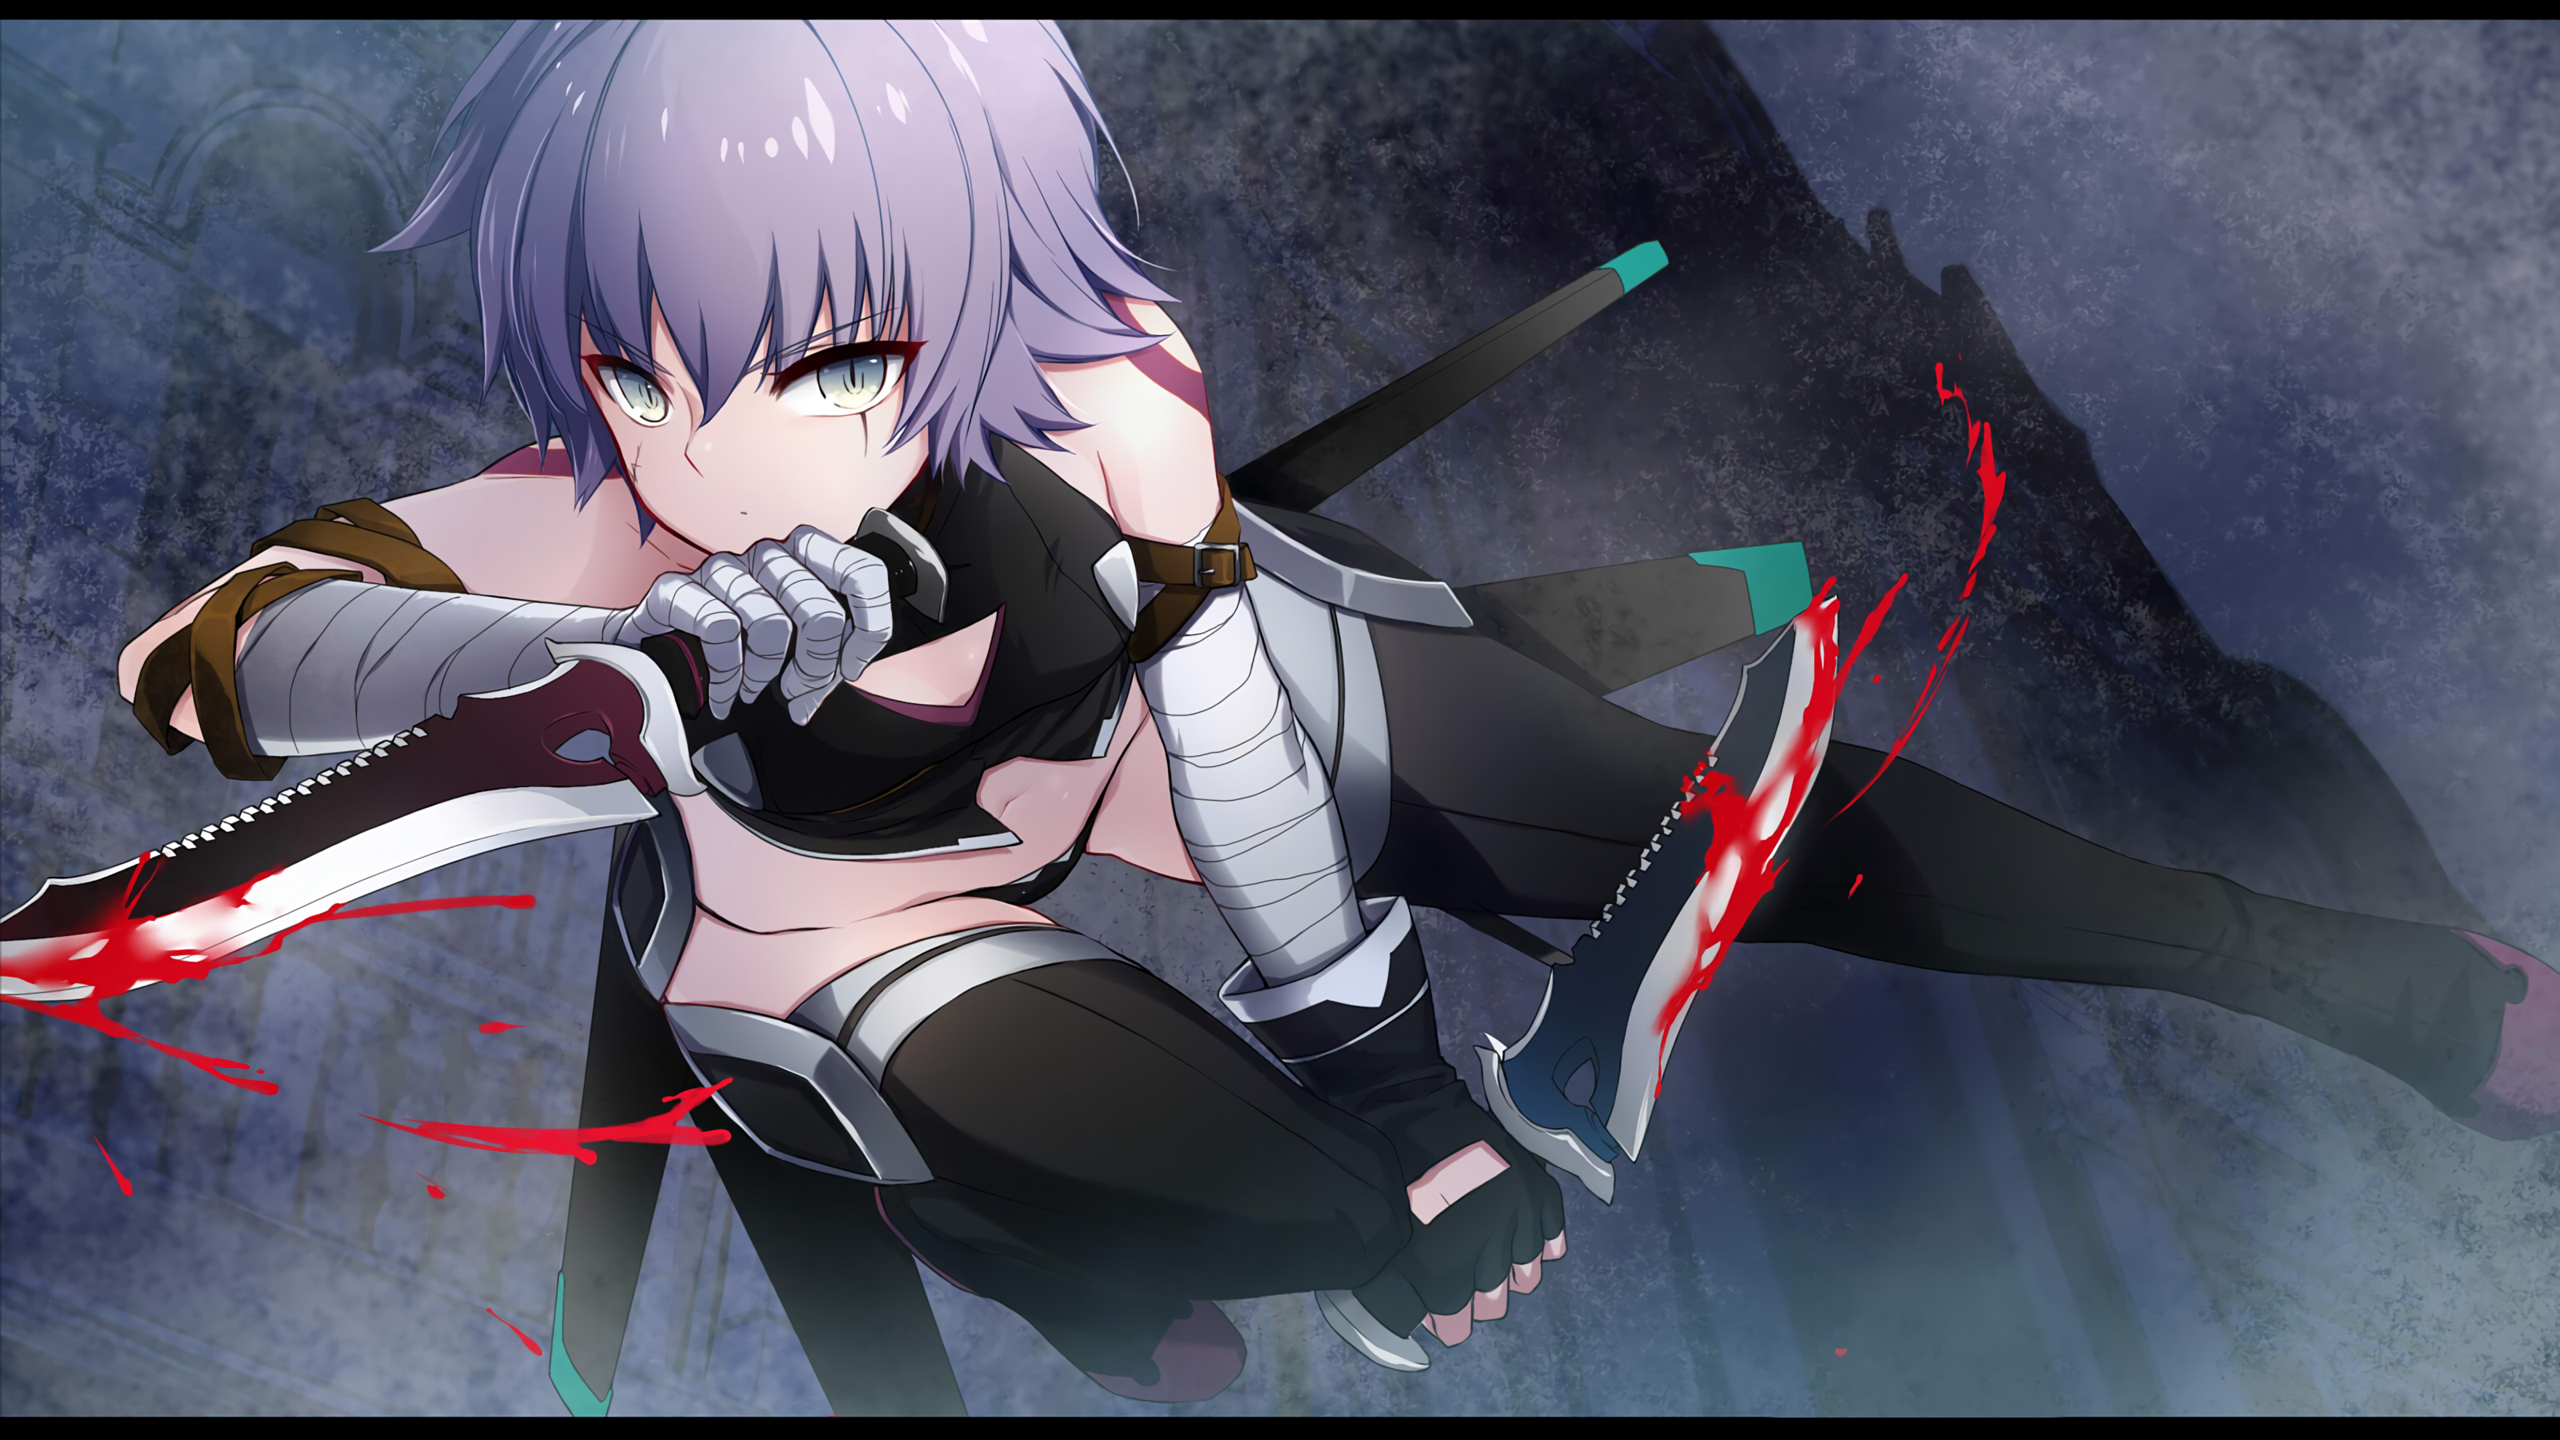 14 Assassin Of Black Fate Apocrypha Hd Wallpapers Background